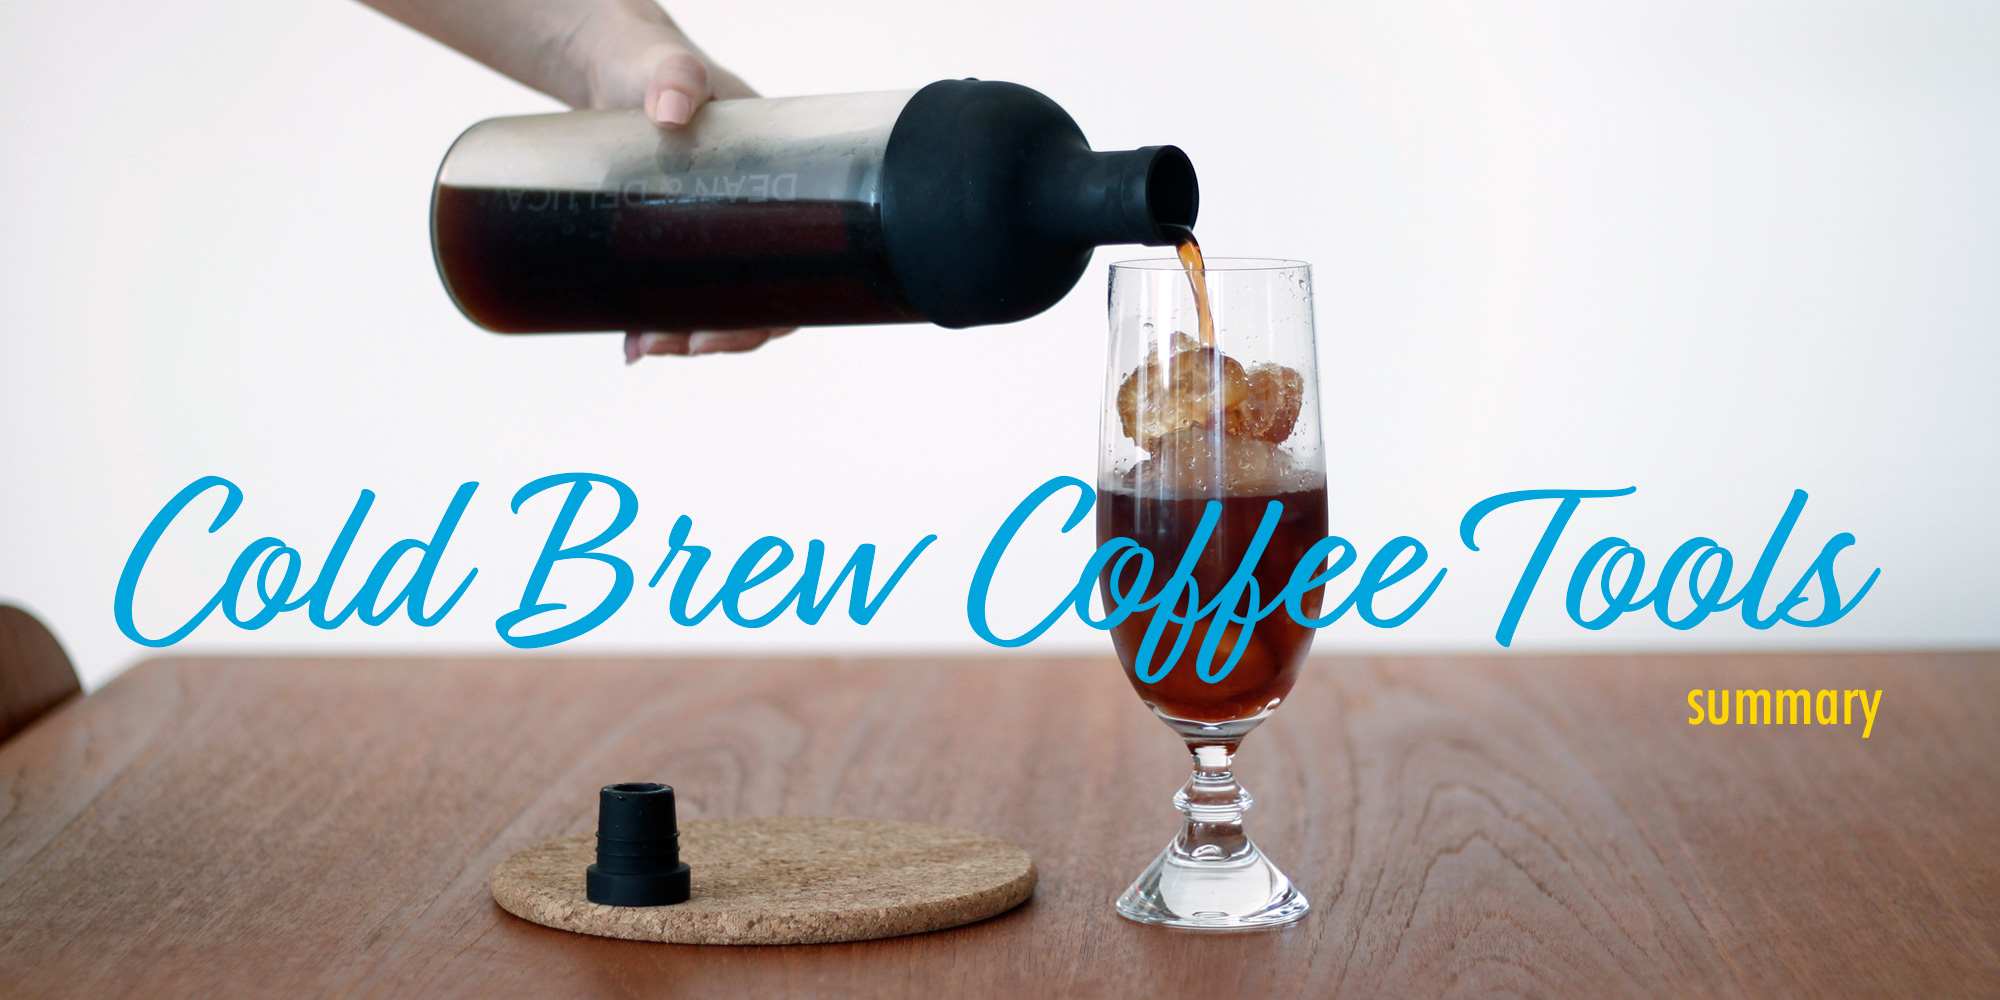 COLDBREW COFFEE MAKER